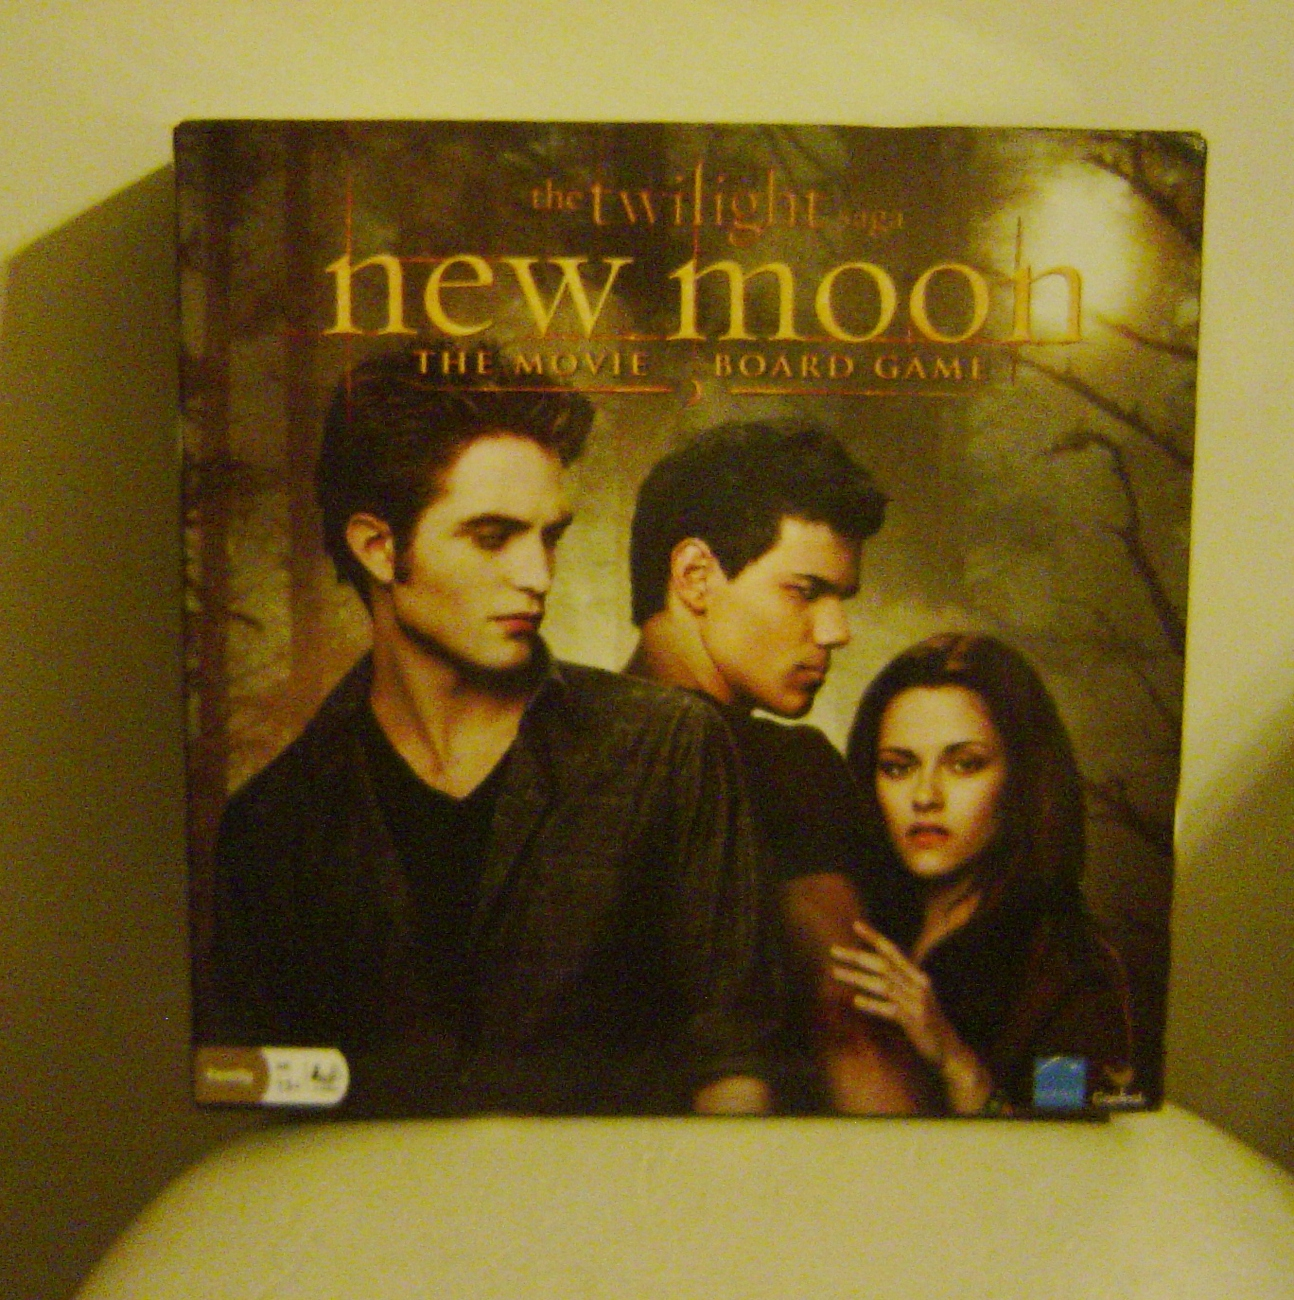 twilight new moon the movie board game 1970now